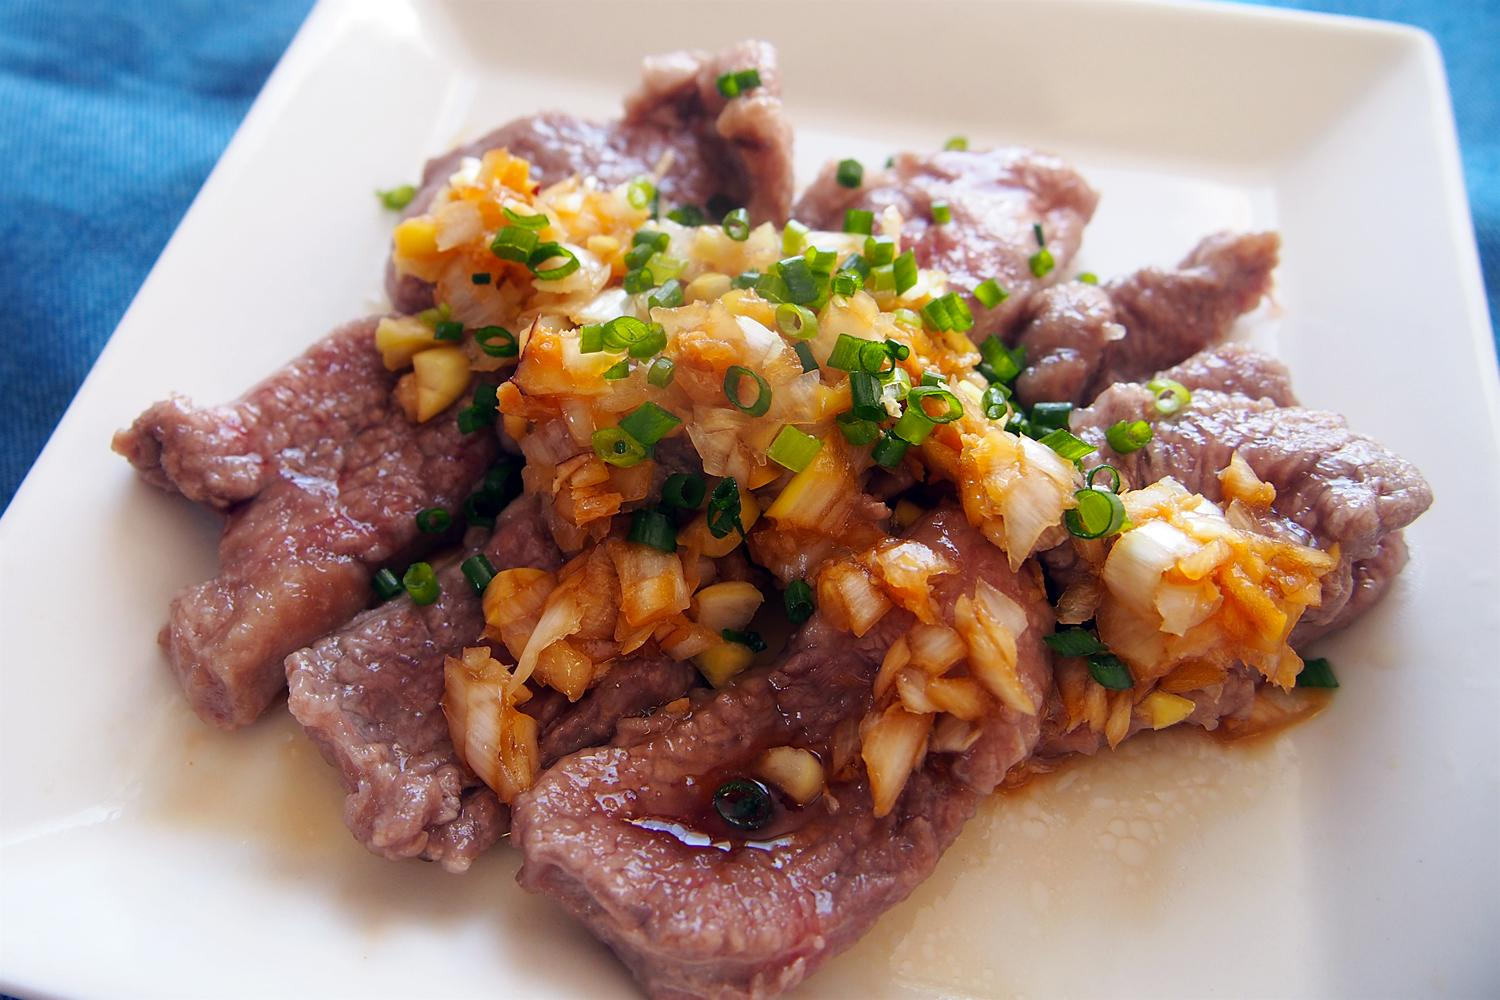 BOILED LAMB WITH GINGER SAUCE